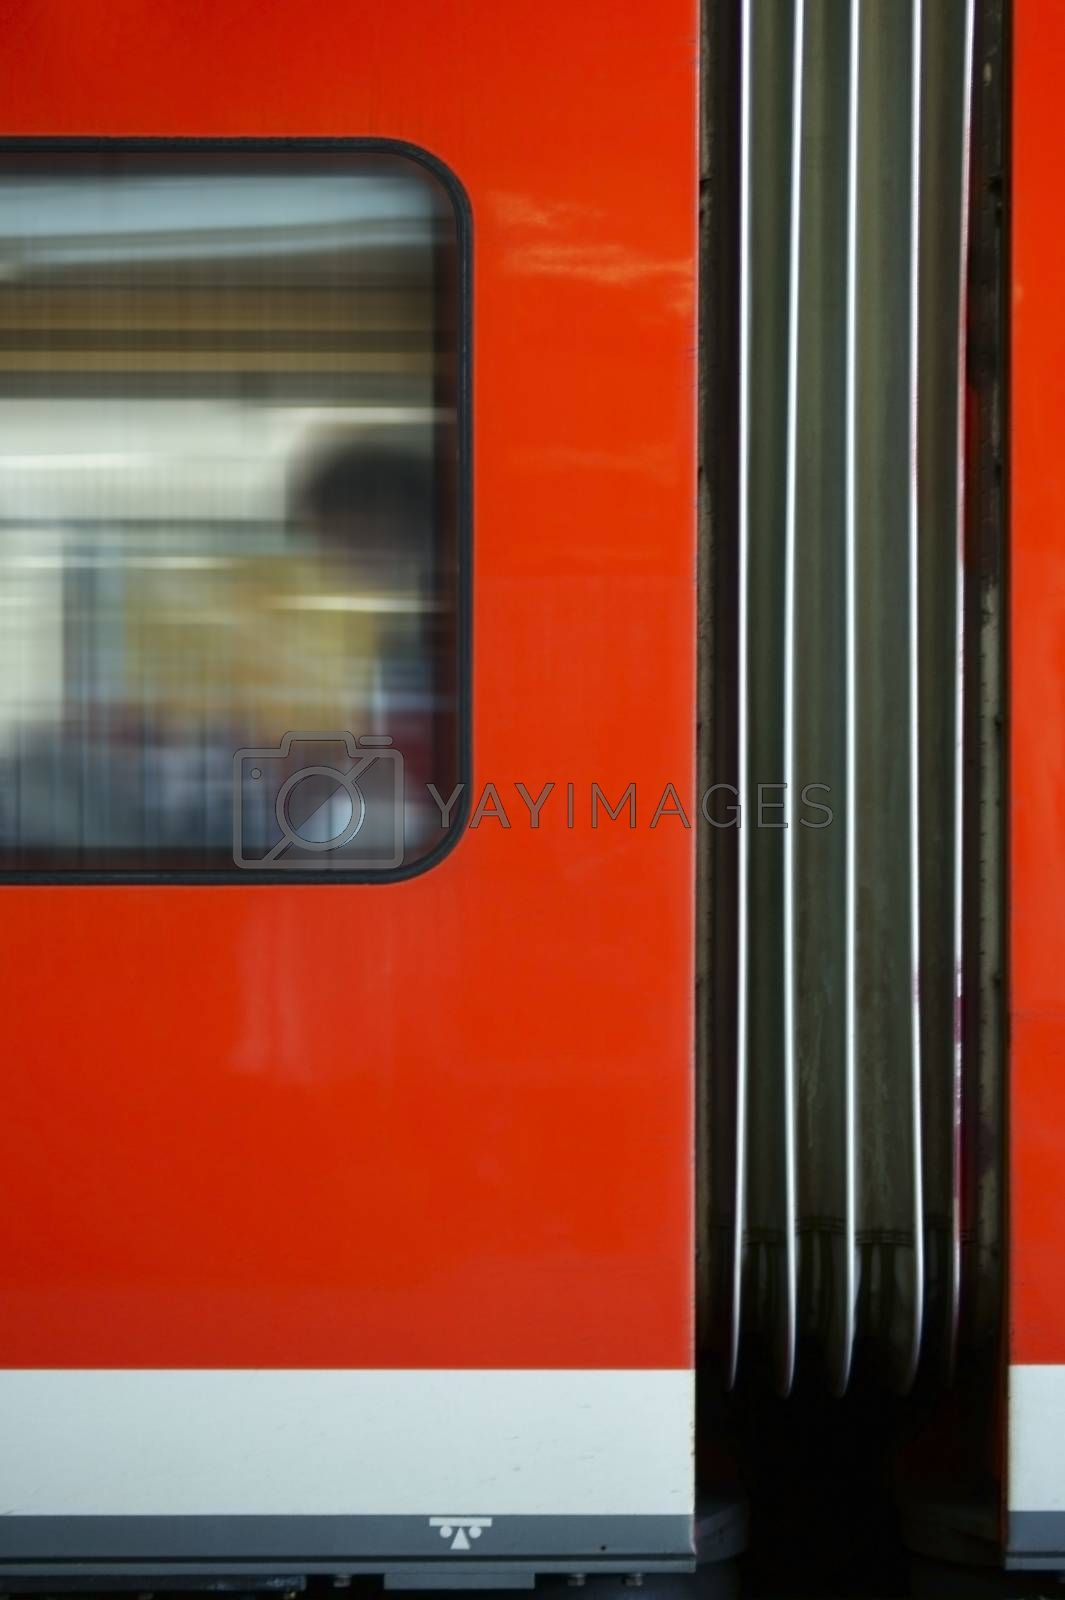 Royalty free image of Train outside body by ginton